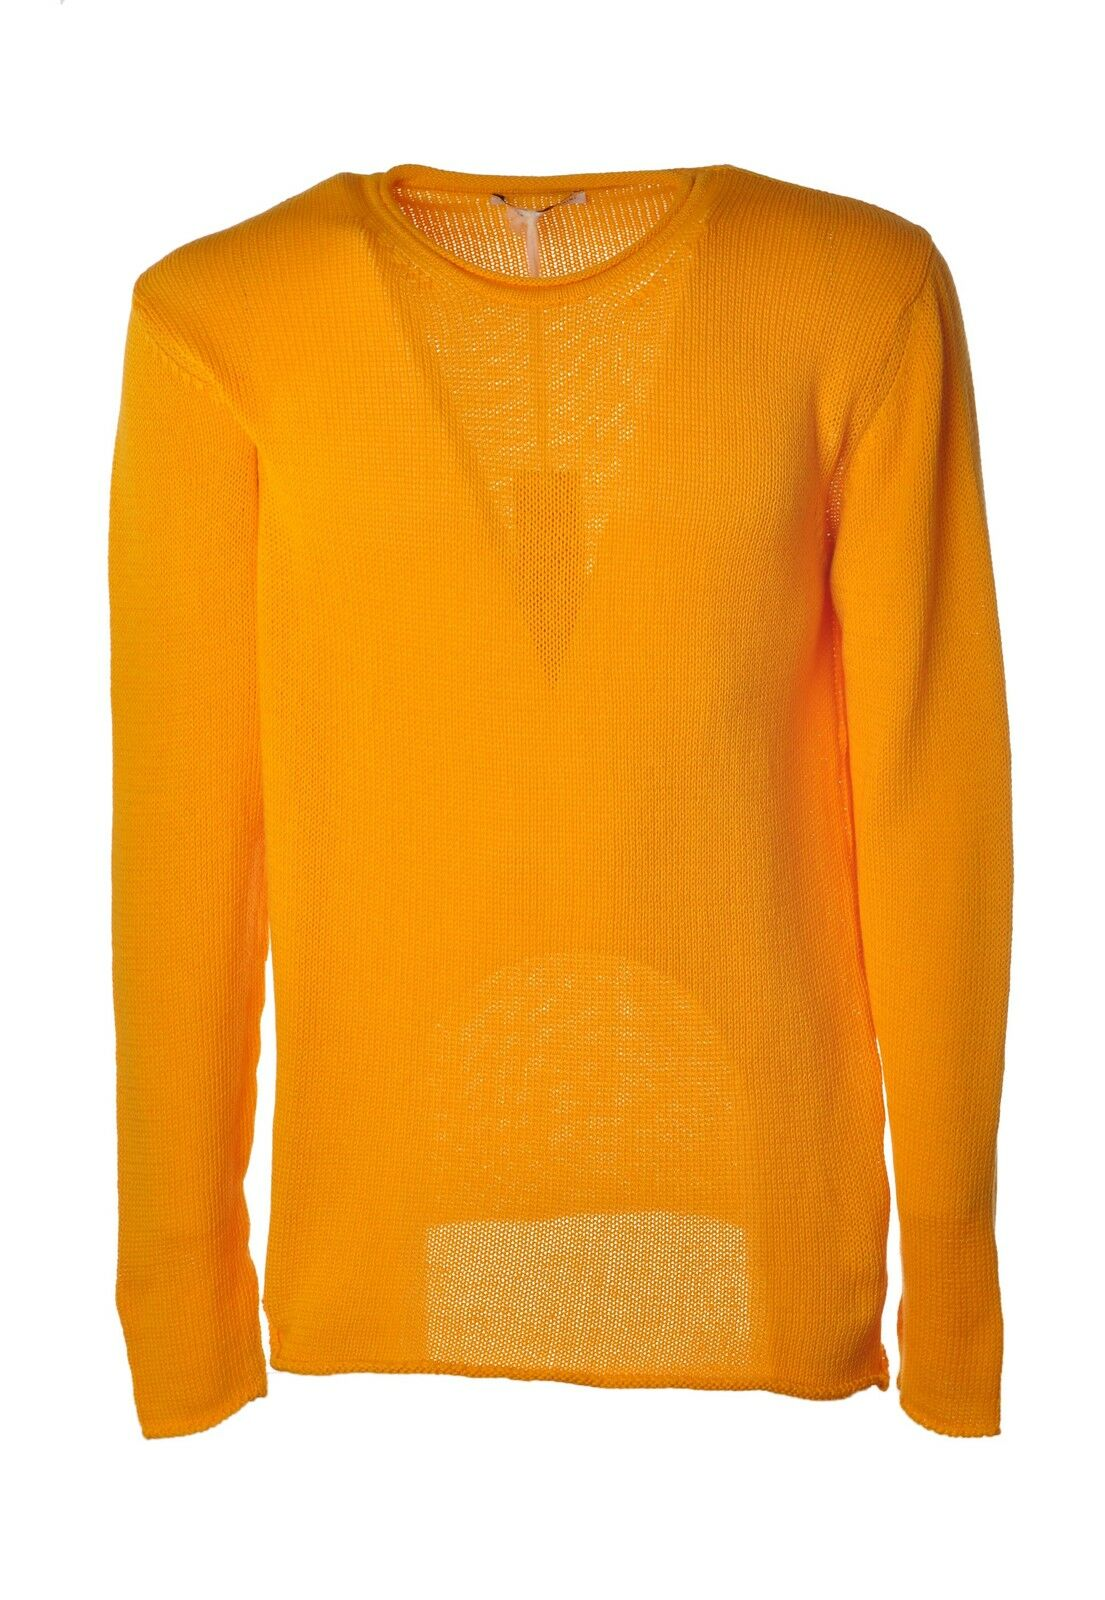 4350af6d Daniele Alessandrini - Sweaters - Male - Yellow - 3817129A181059 ...